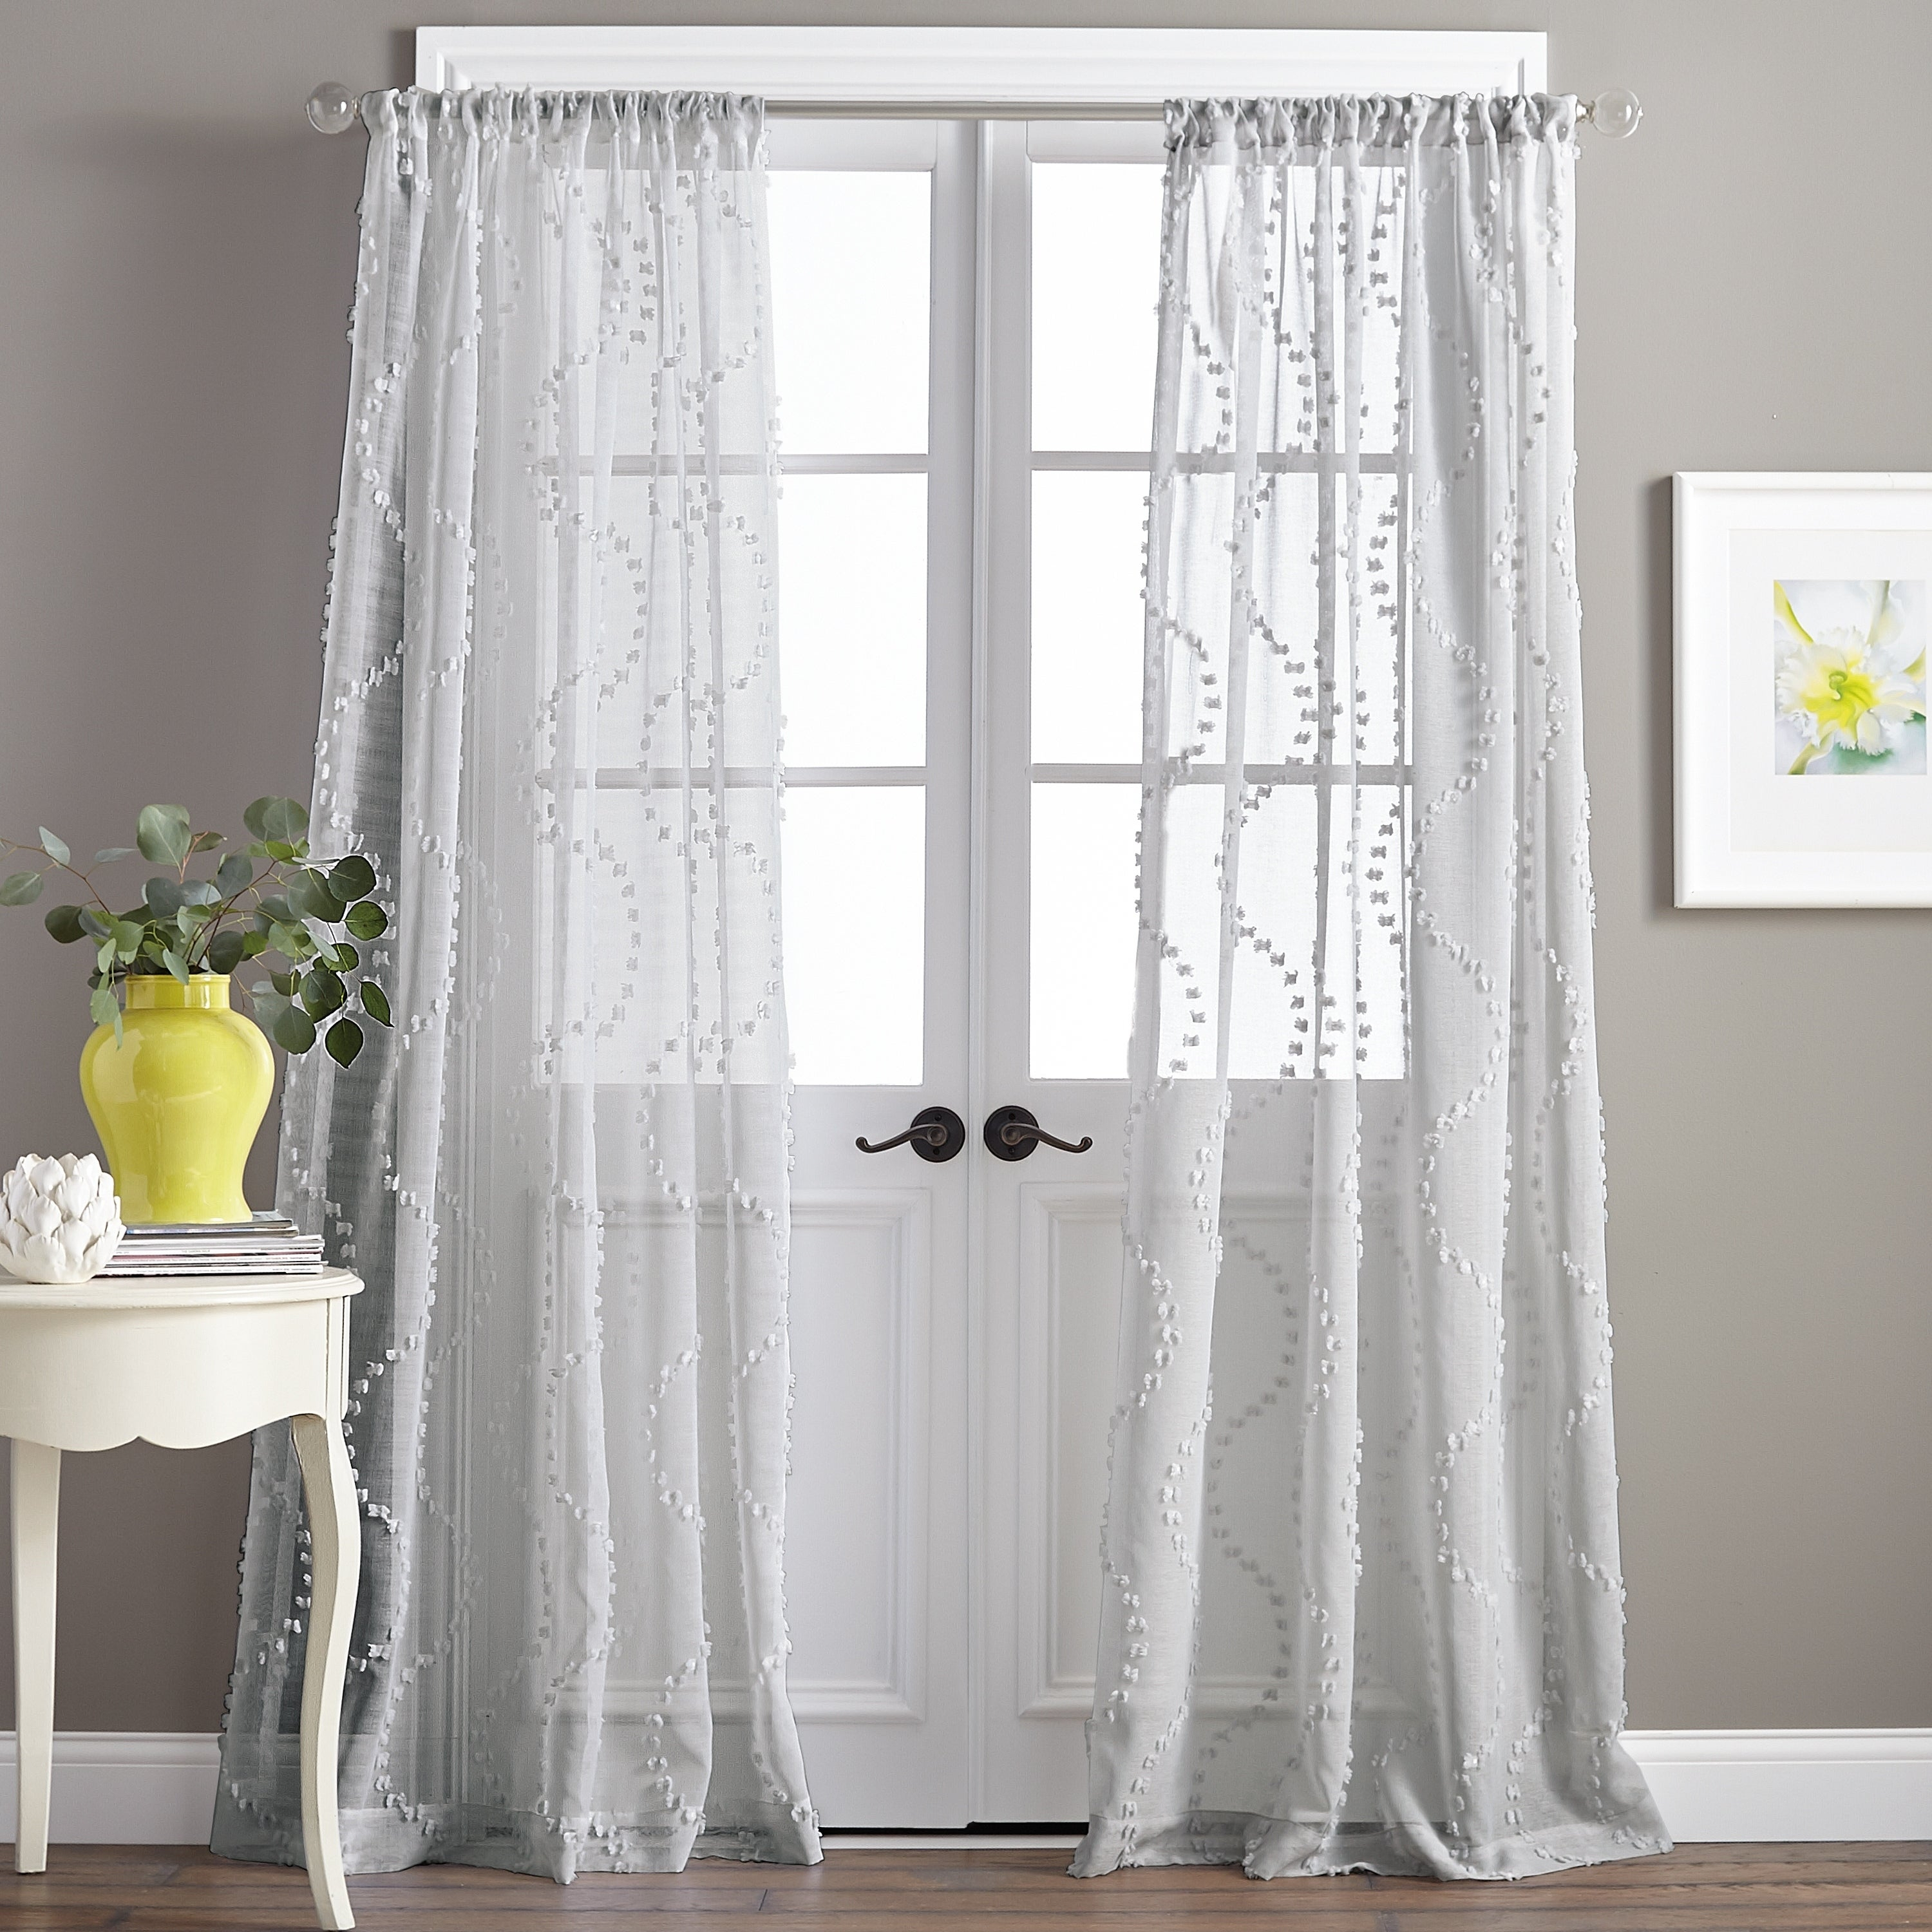 Details About Dixon Wave Sheer Single Curtain Panel With Single Curtain Panels (View 14 of 31)